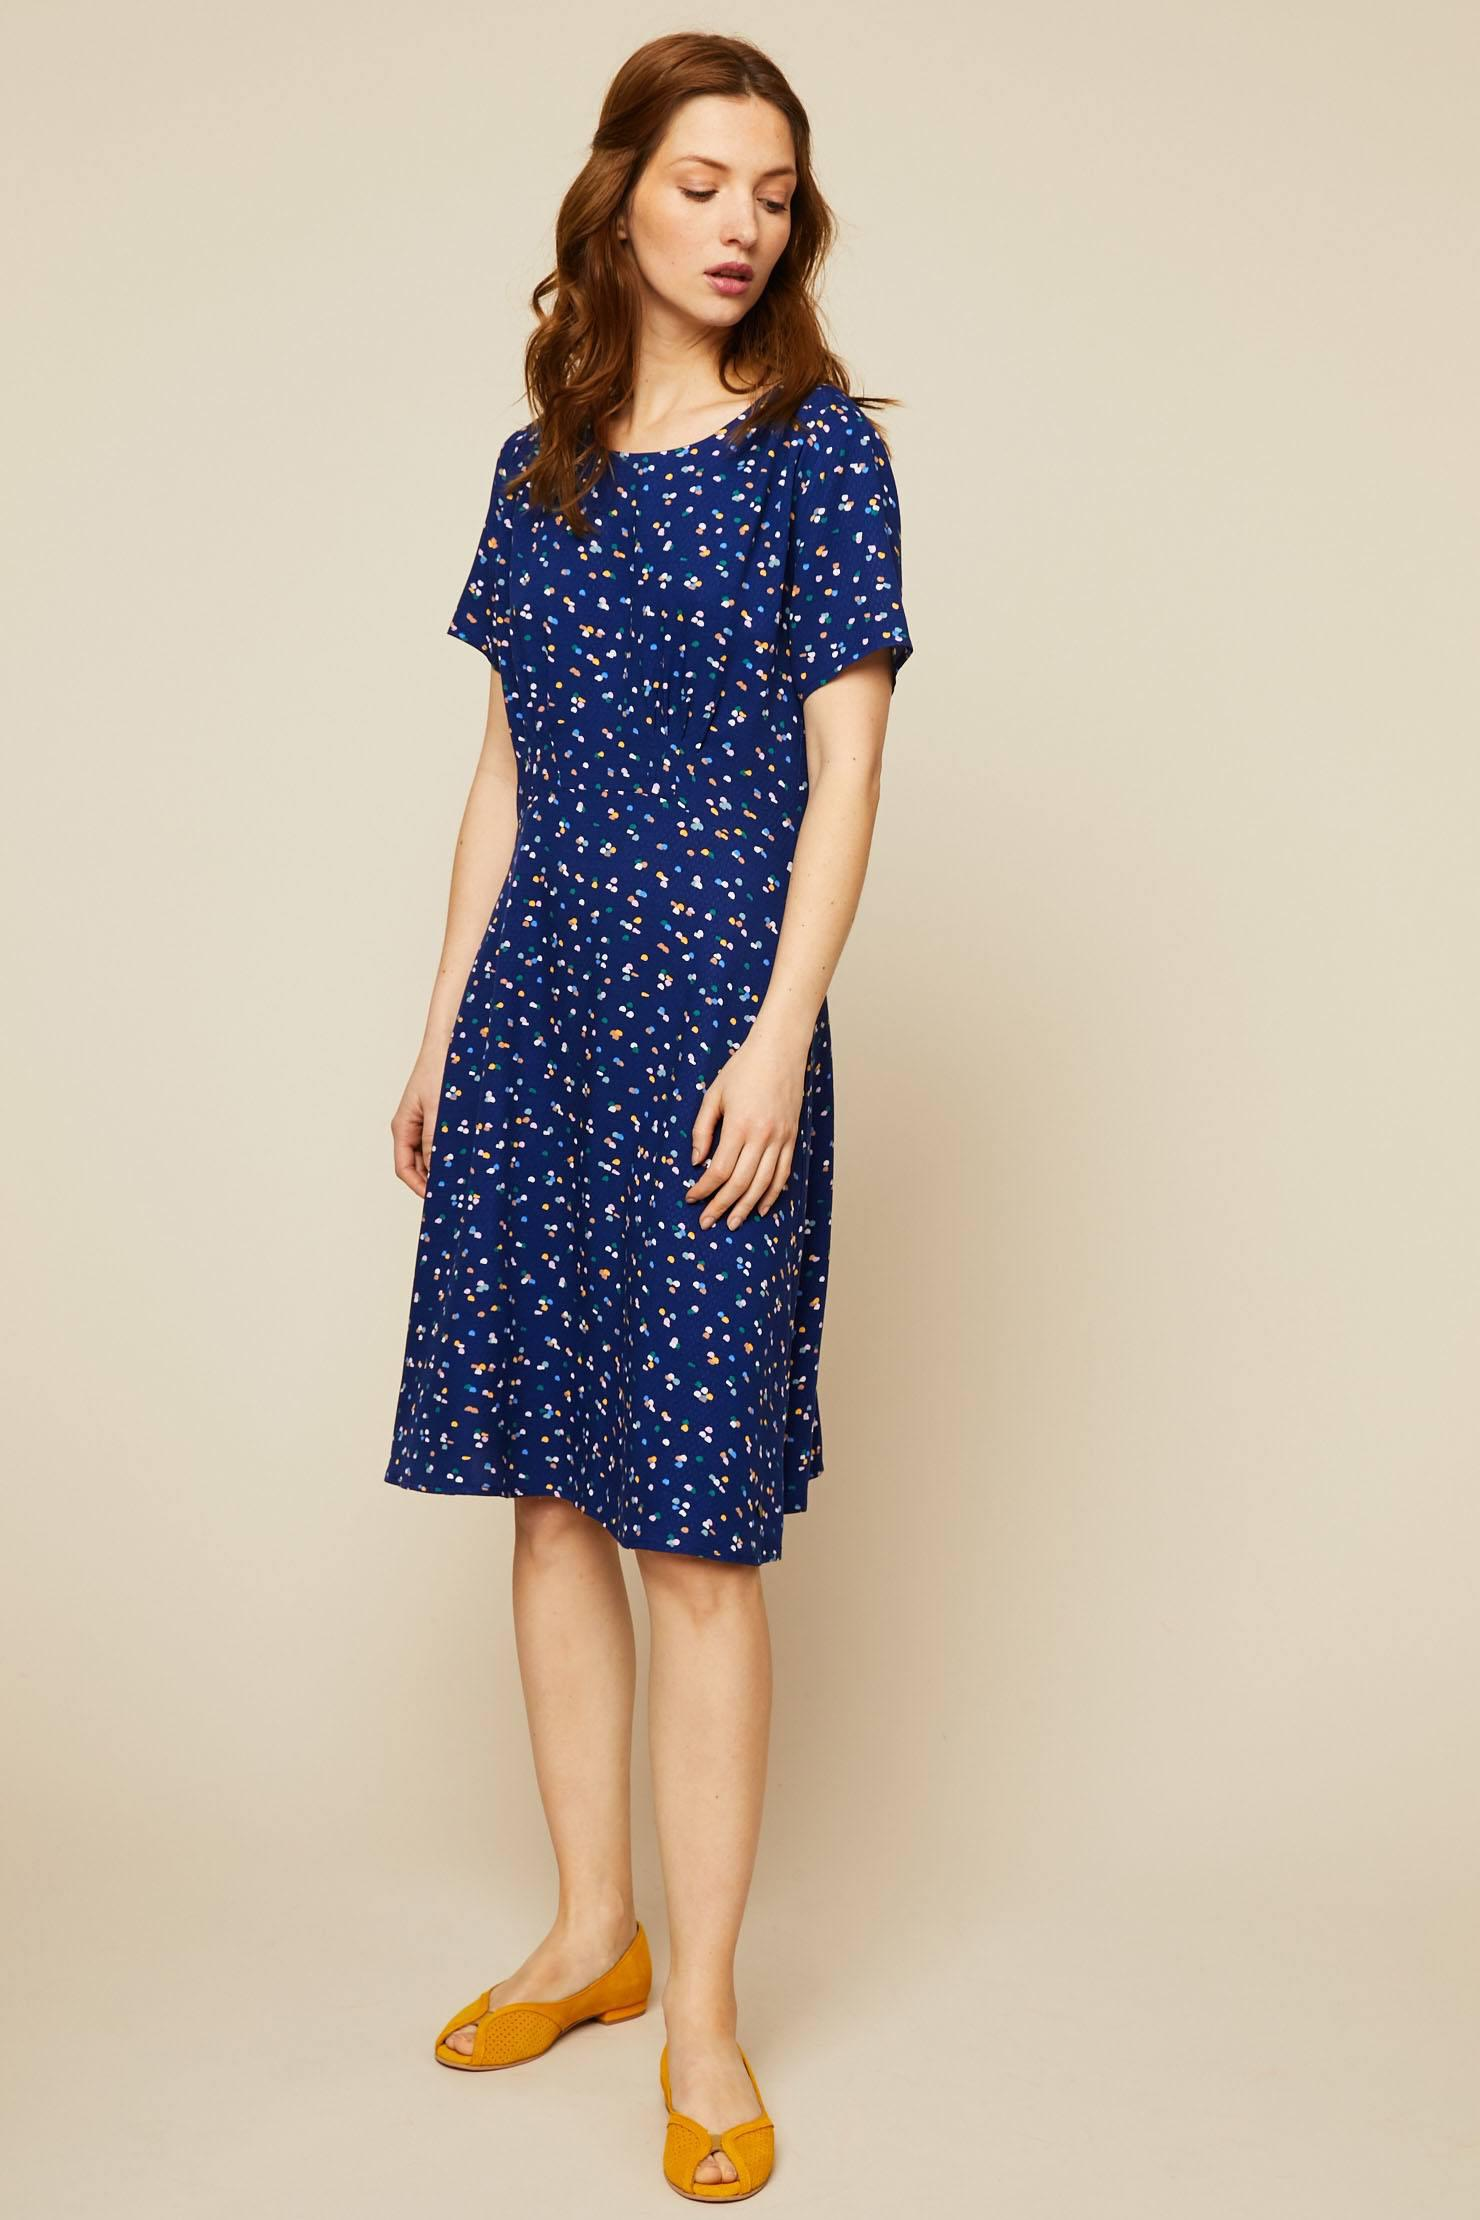 DRESSES - Short dresses Nümph Outlet Browse Cheap Low Shipping Fee 2OErLF